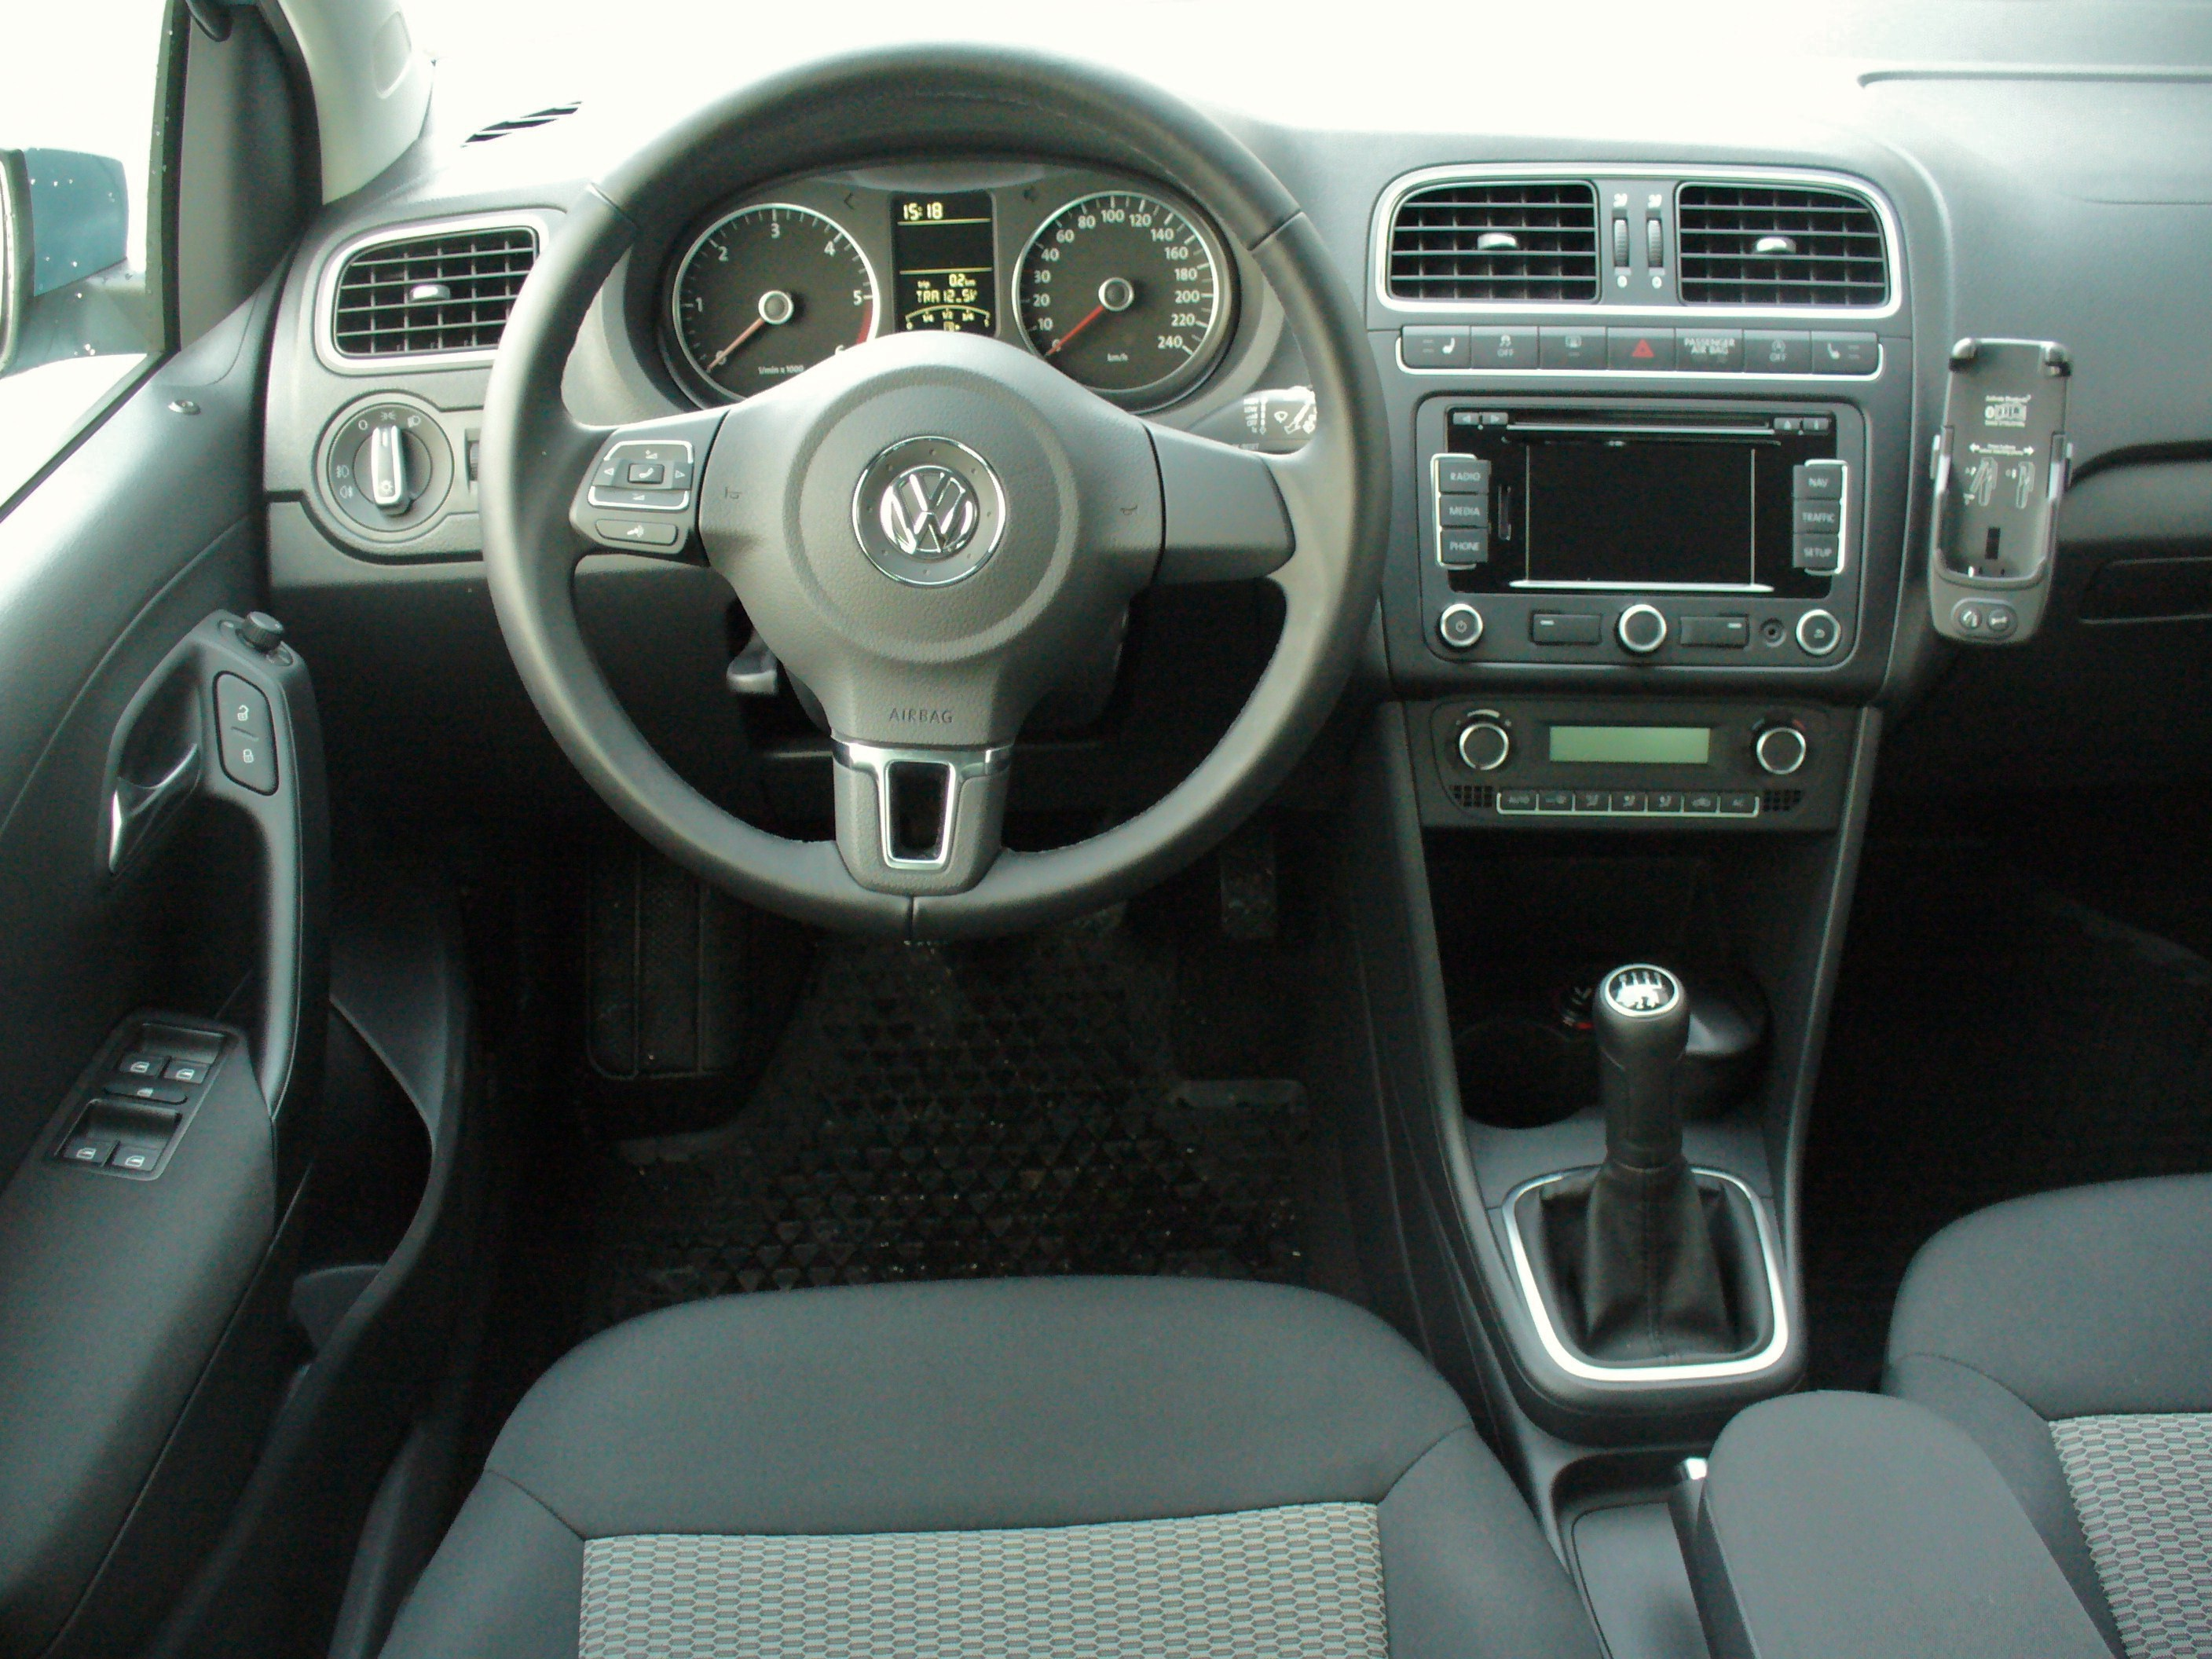 Interieur Vw Up File Vw Polo V 1 2 Tdi Bluemotion Glacierblau Interieur Jpg